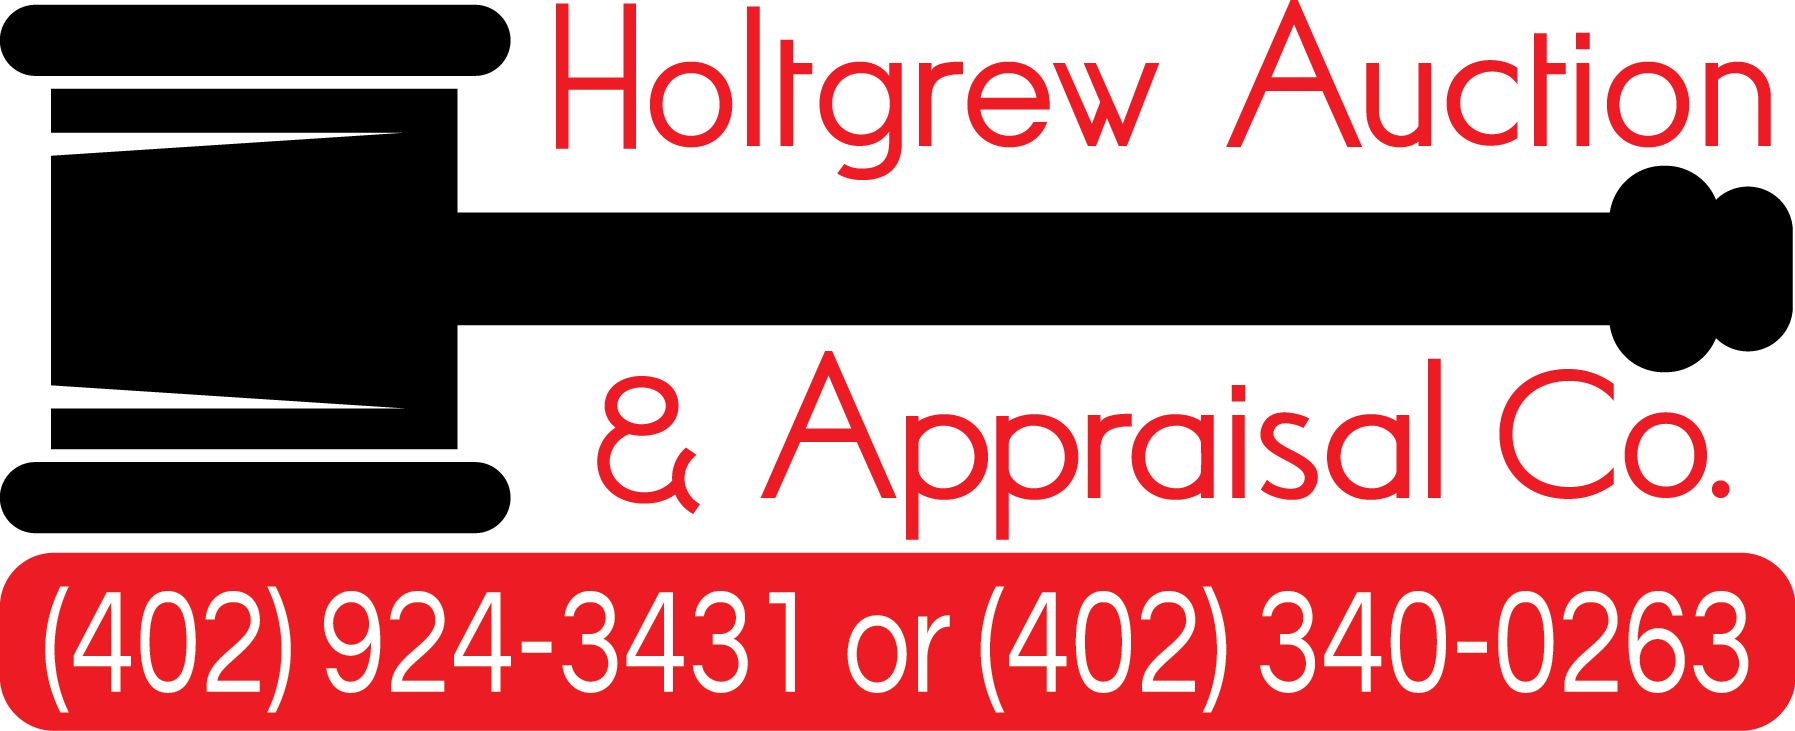 Holtgrew Auctions Online